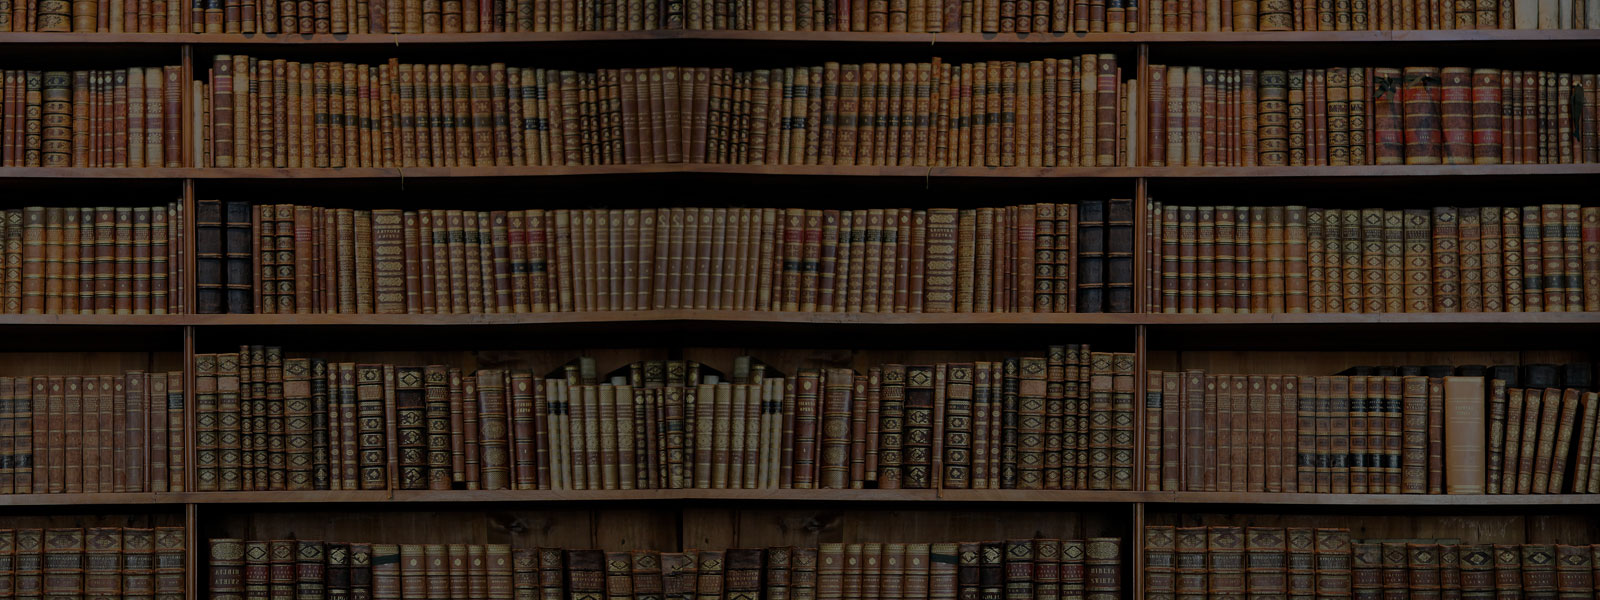 books-background